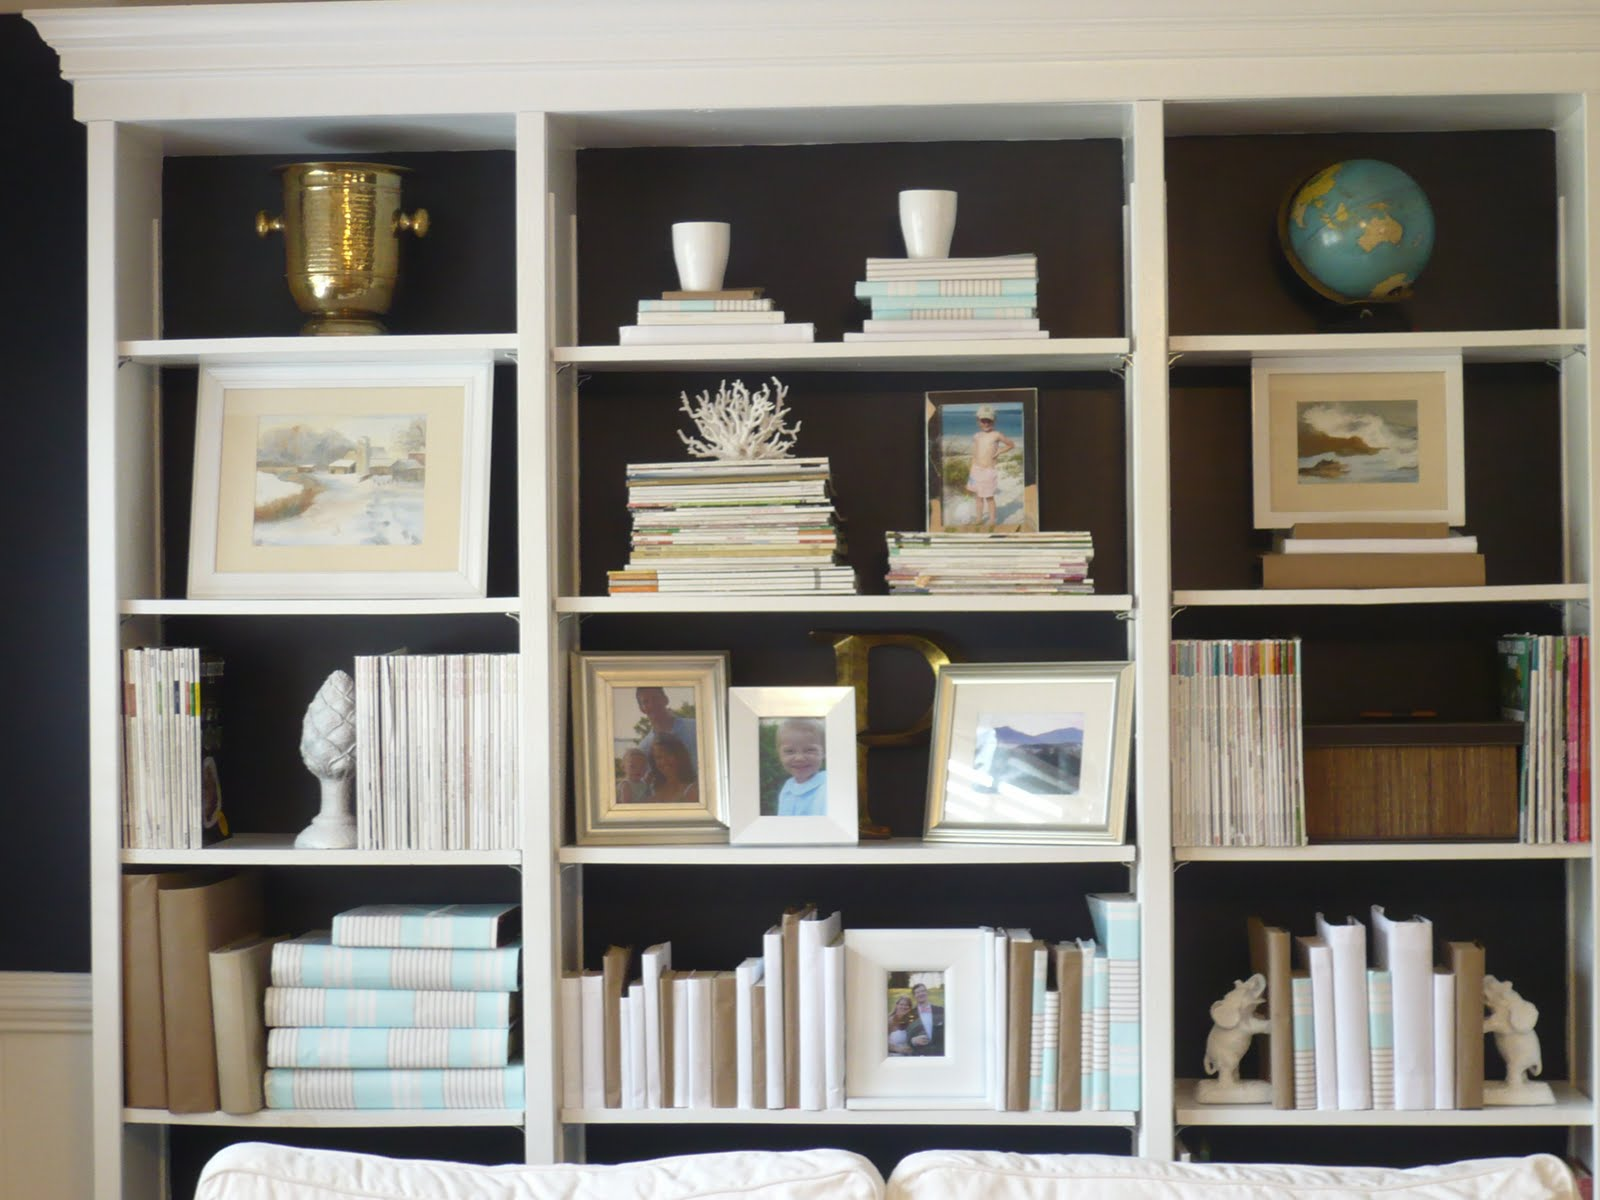 Family Room Bookshelves Ideas Part - 47: This Blogger Westhampton DIY HERE Redid Her Family Room - She Painted The  Back Of Her Shelves And Notice How She Got A Great Look On Her Shelves By  Covering ...